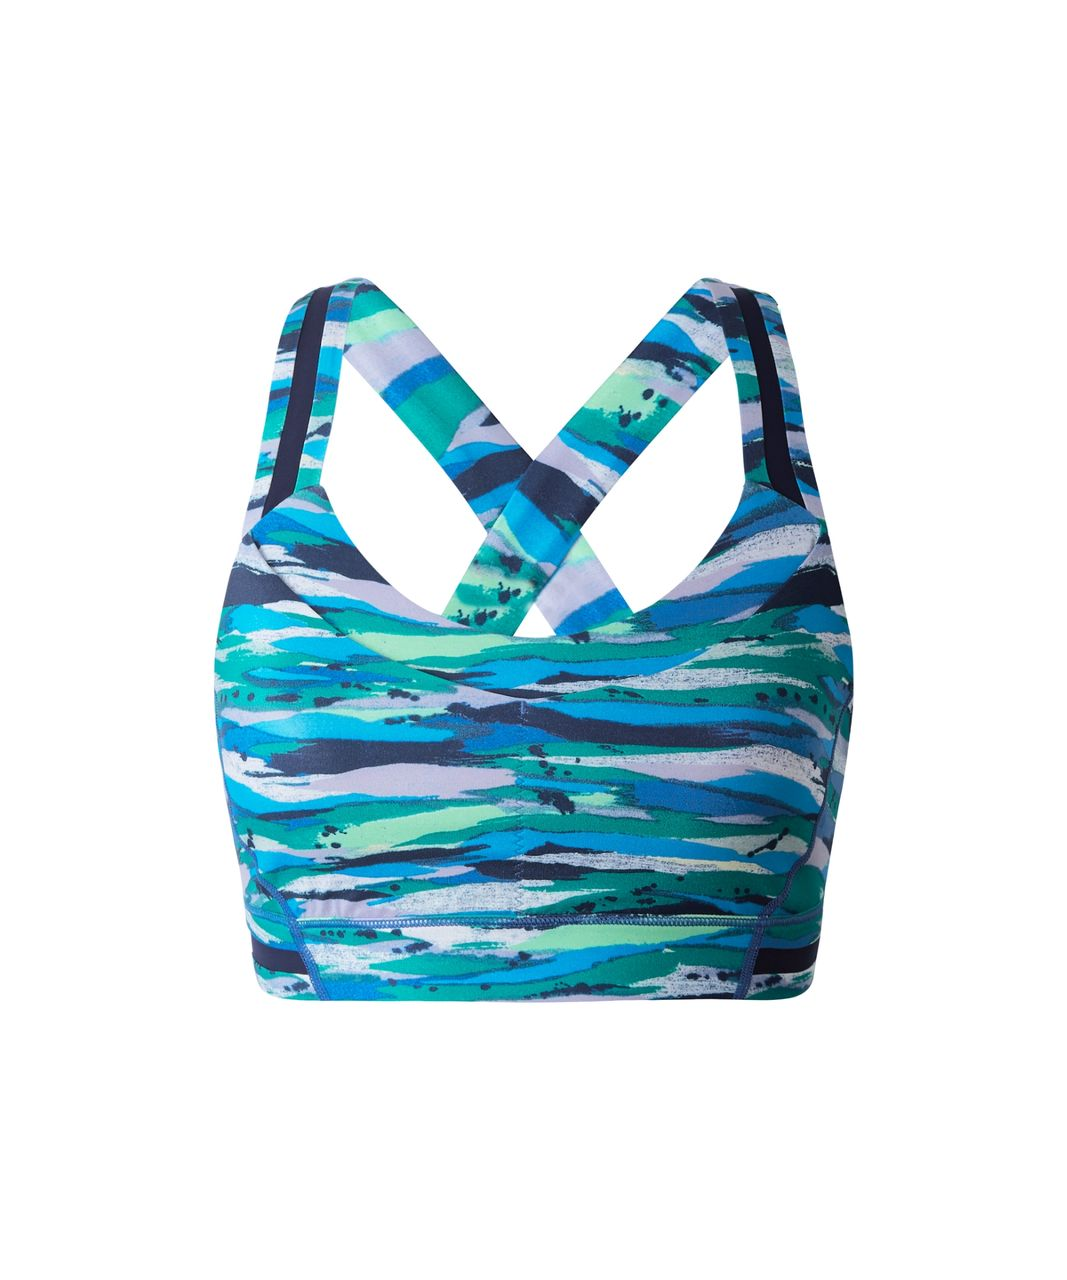 Lululemon Rack Pack Bra - Seven Wonders Multi